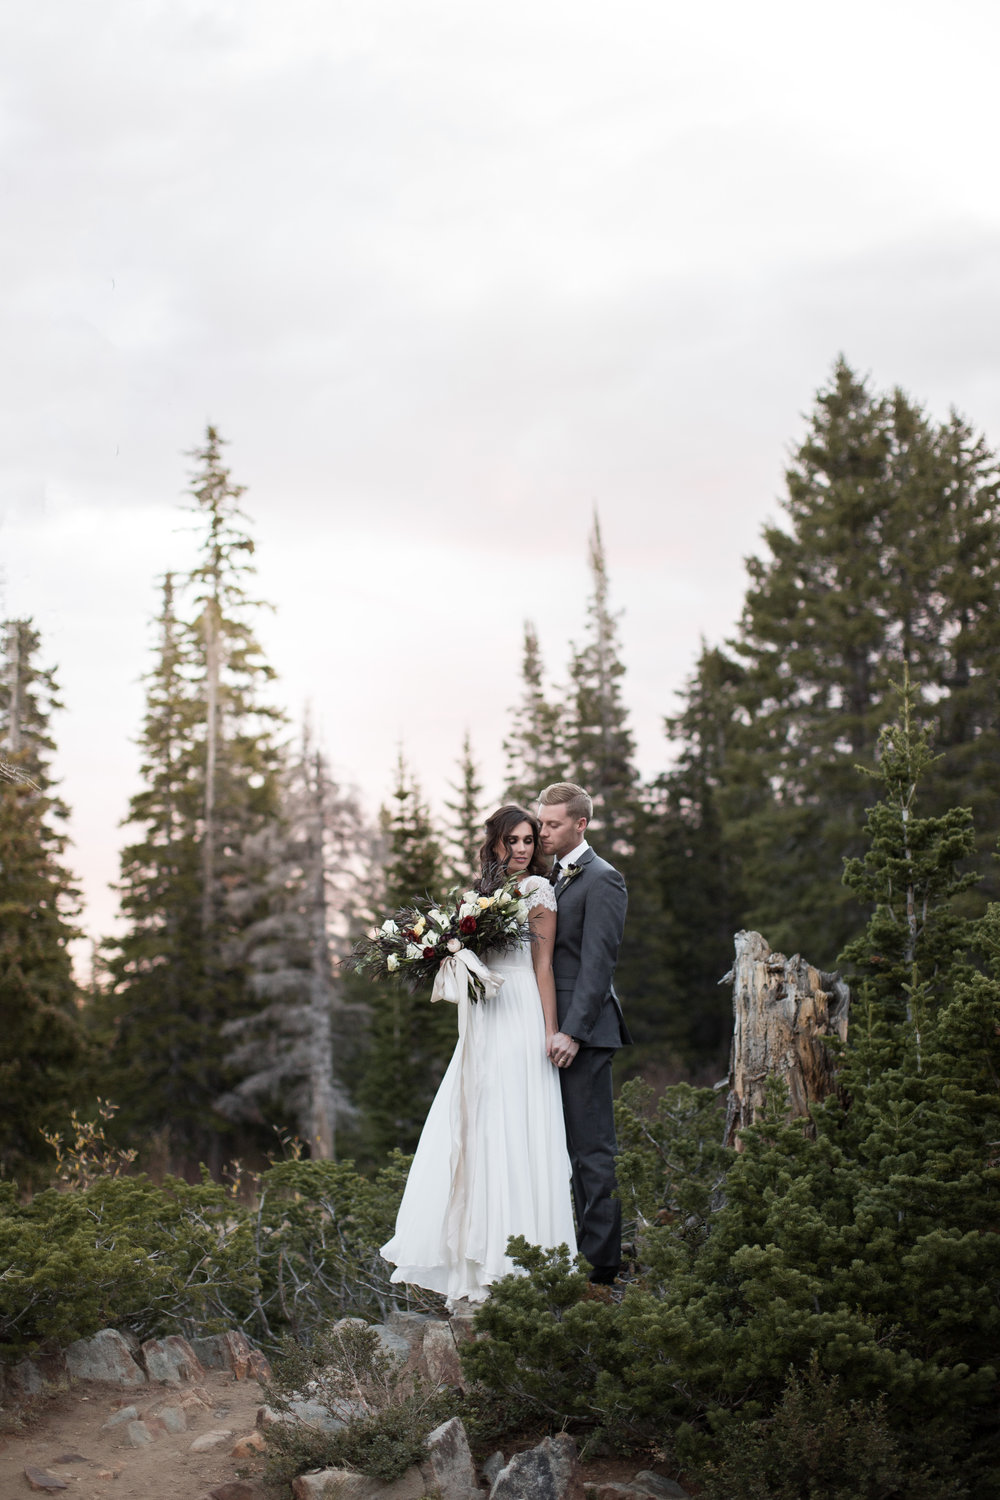 UtahValleyBrideShootTR2016 (10 of 110).jpg